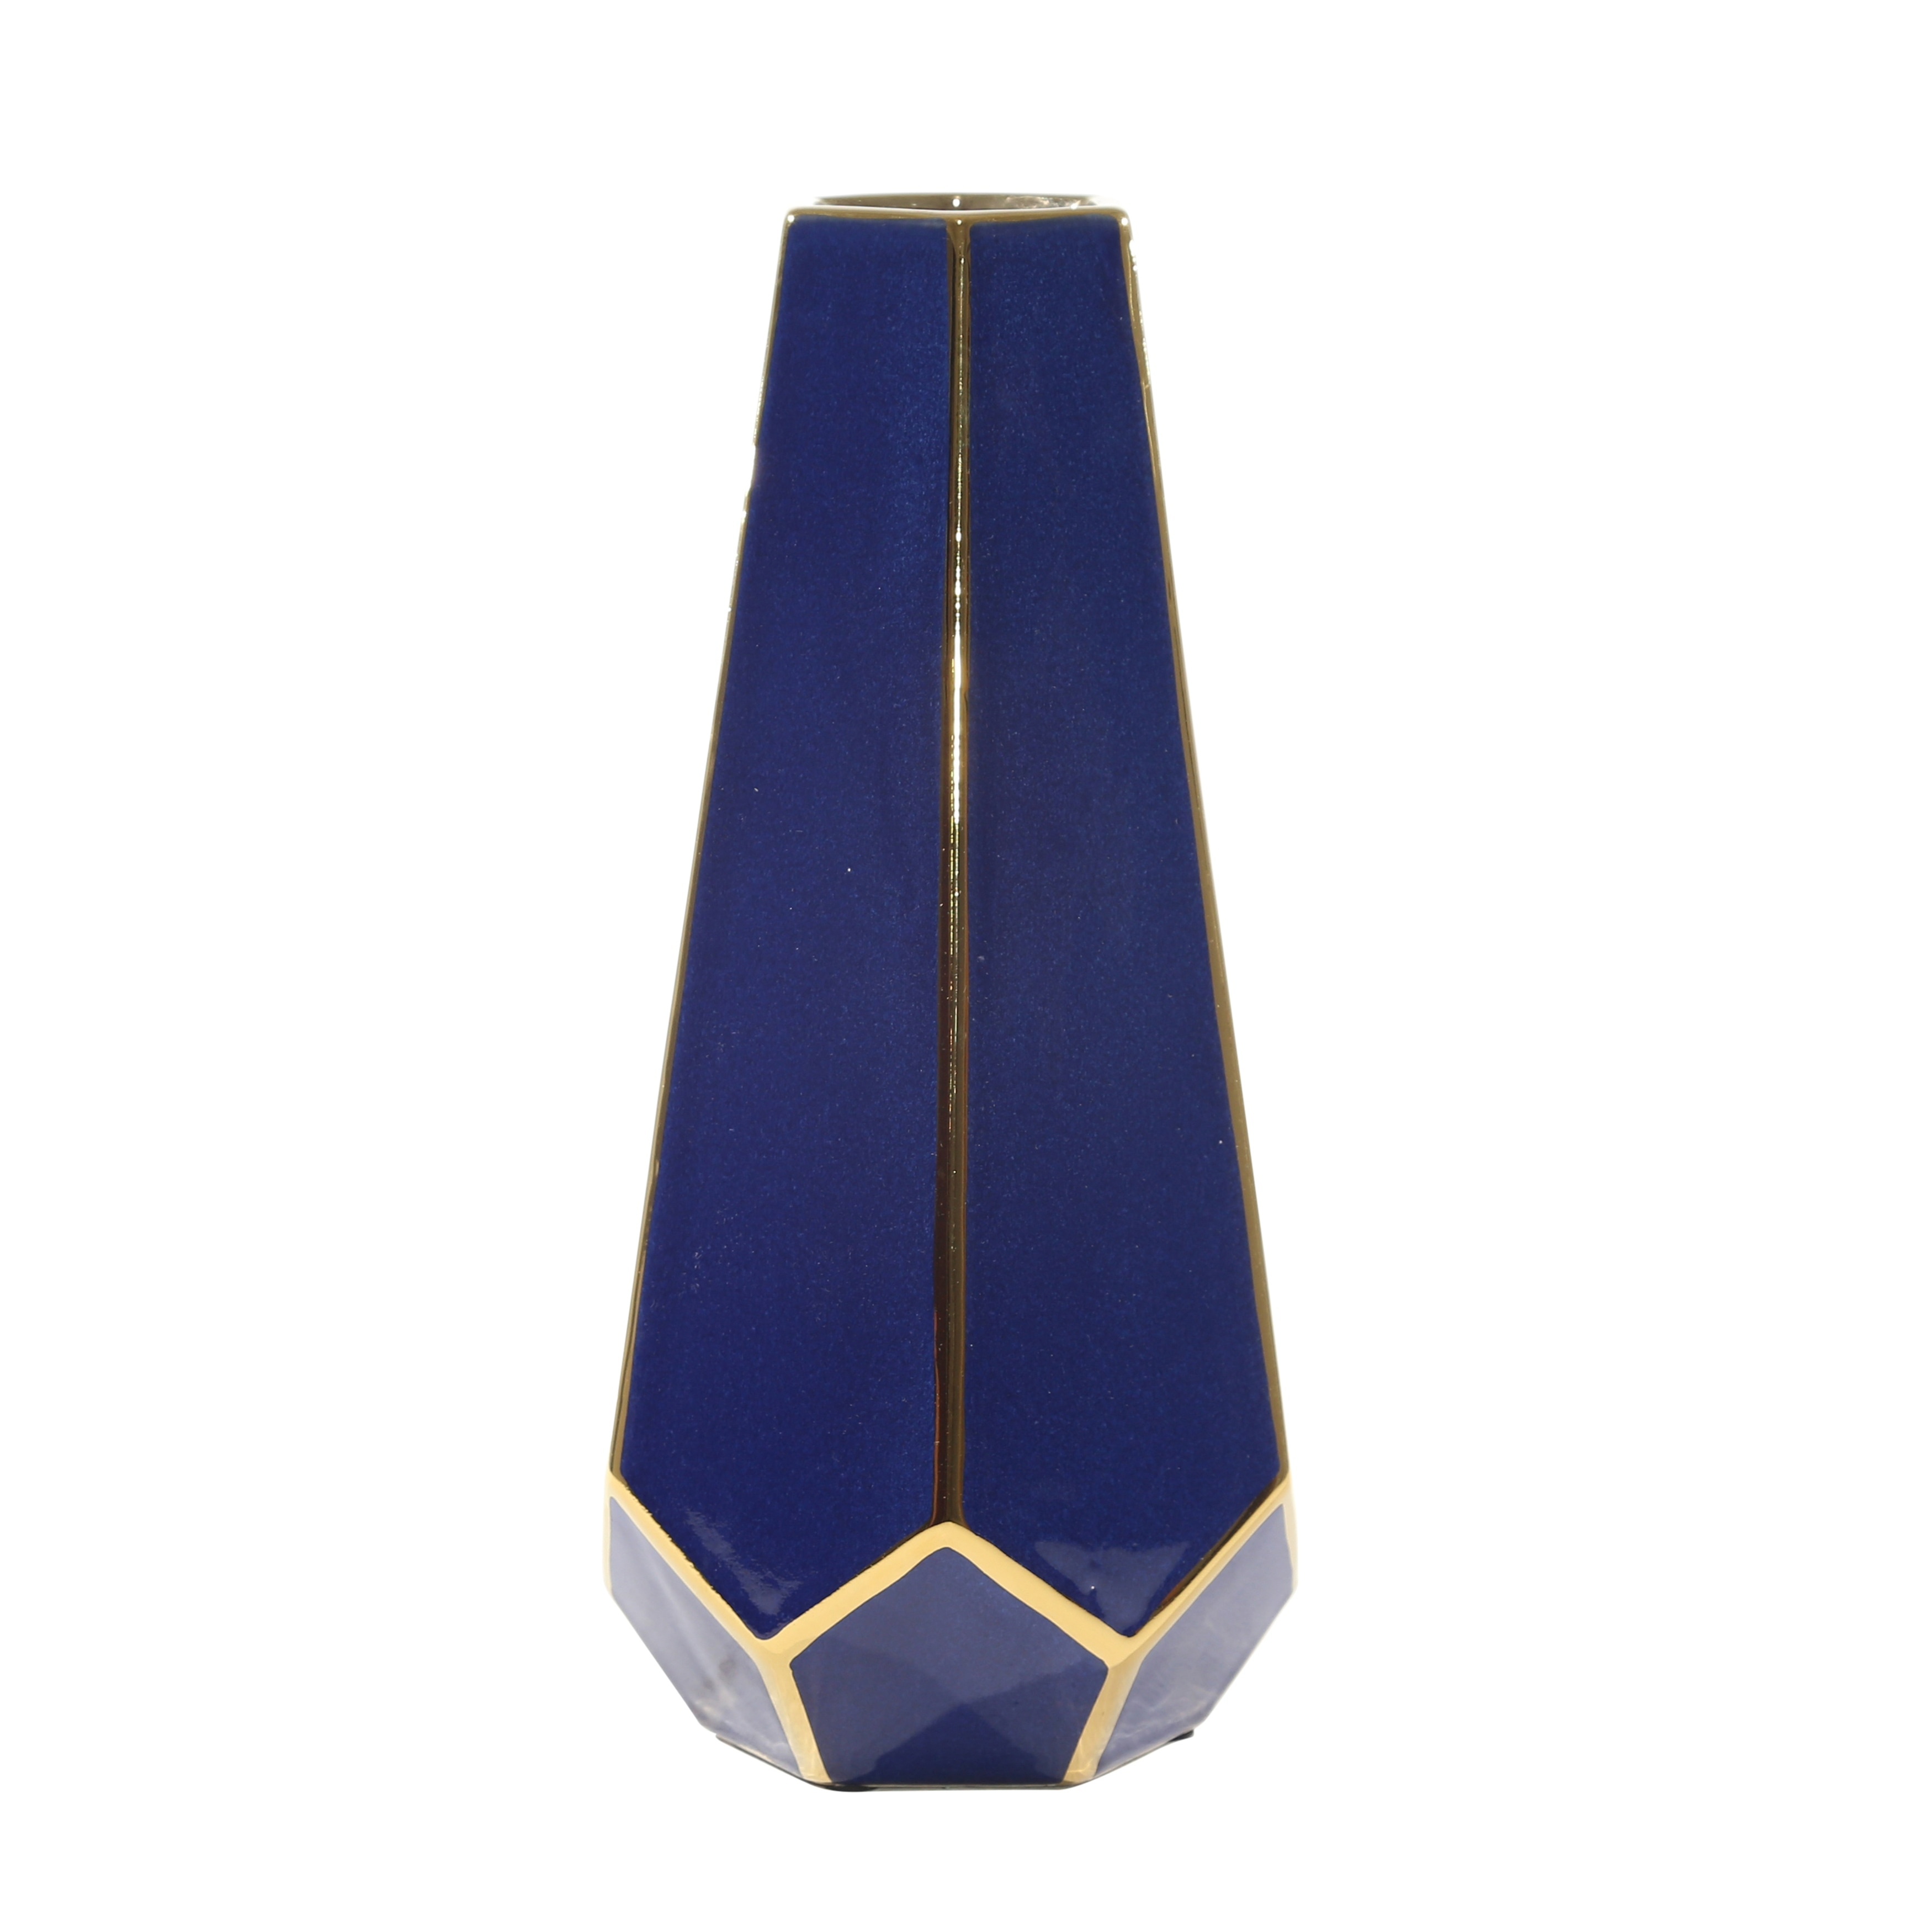 Decorative Faceted Art Vase in Ceramic, Large, Blue and Gold